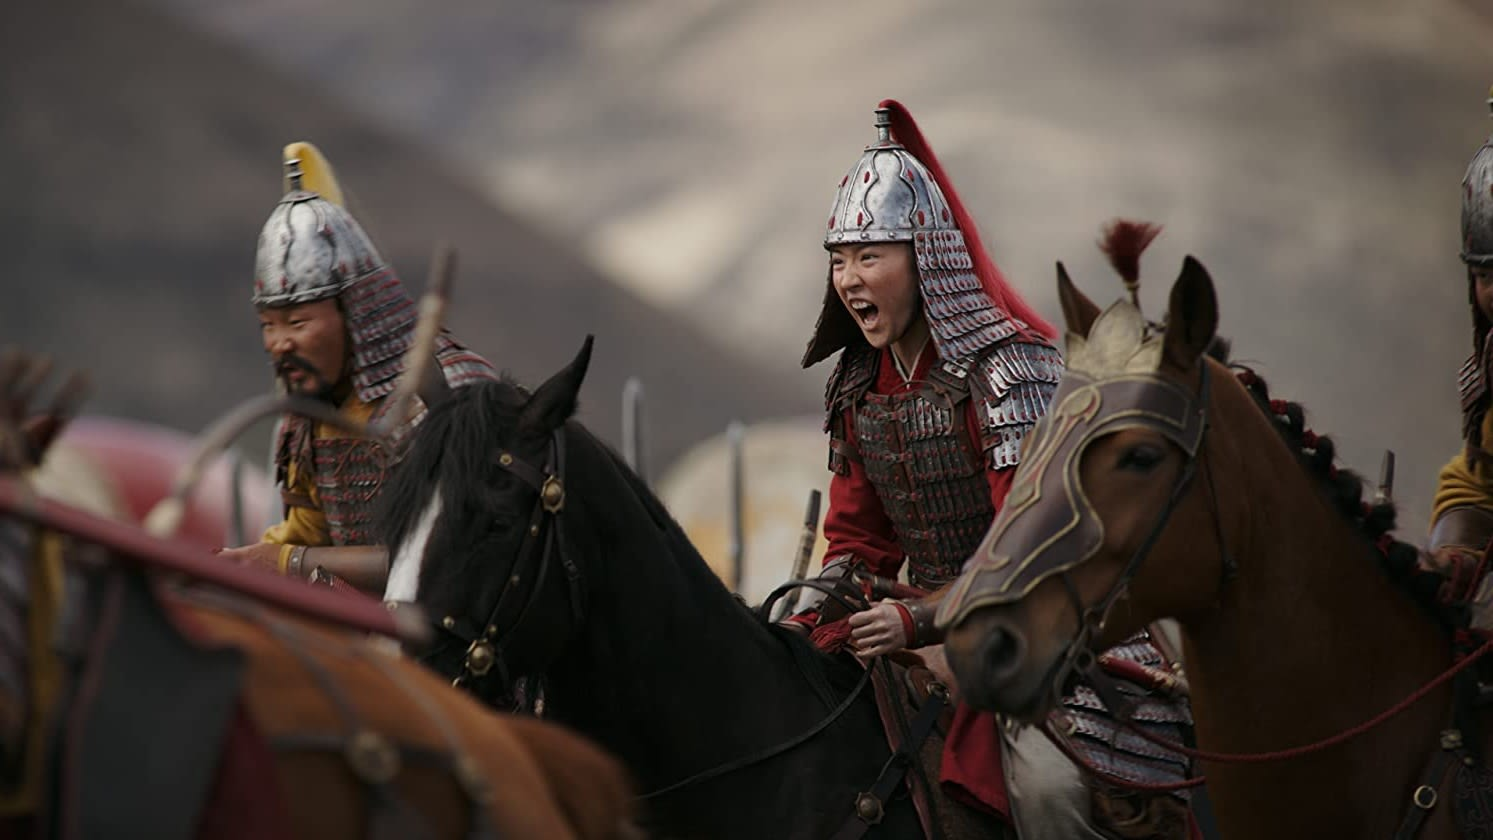 'Mulan' scores $23.2 million during opening weekend in China